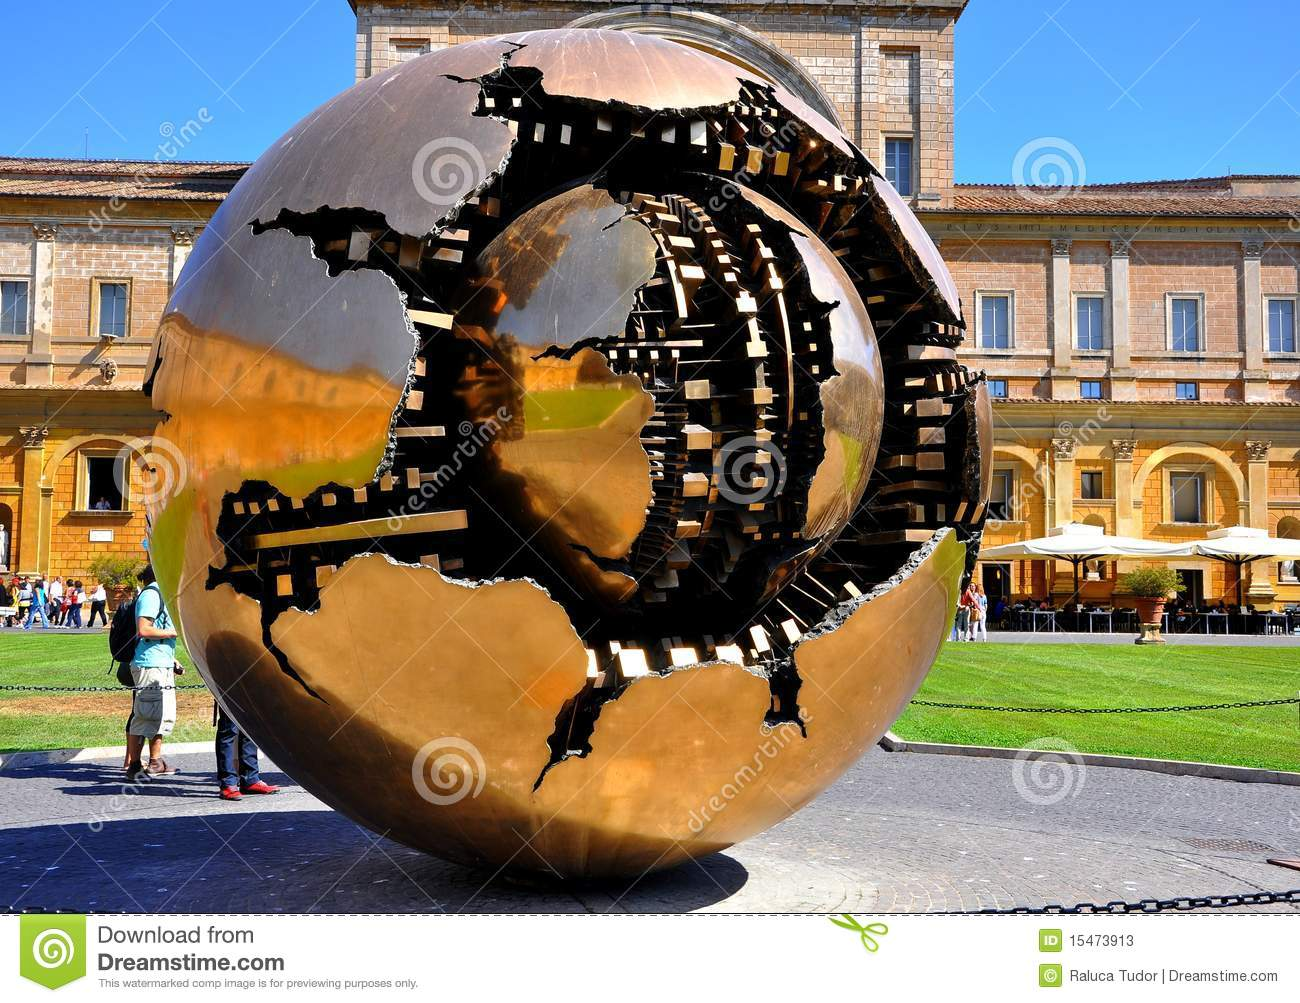 Sculpture Hd Wallpapers Vatican Palace Rome Italy Editorial Stock Photo Image